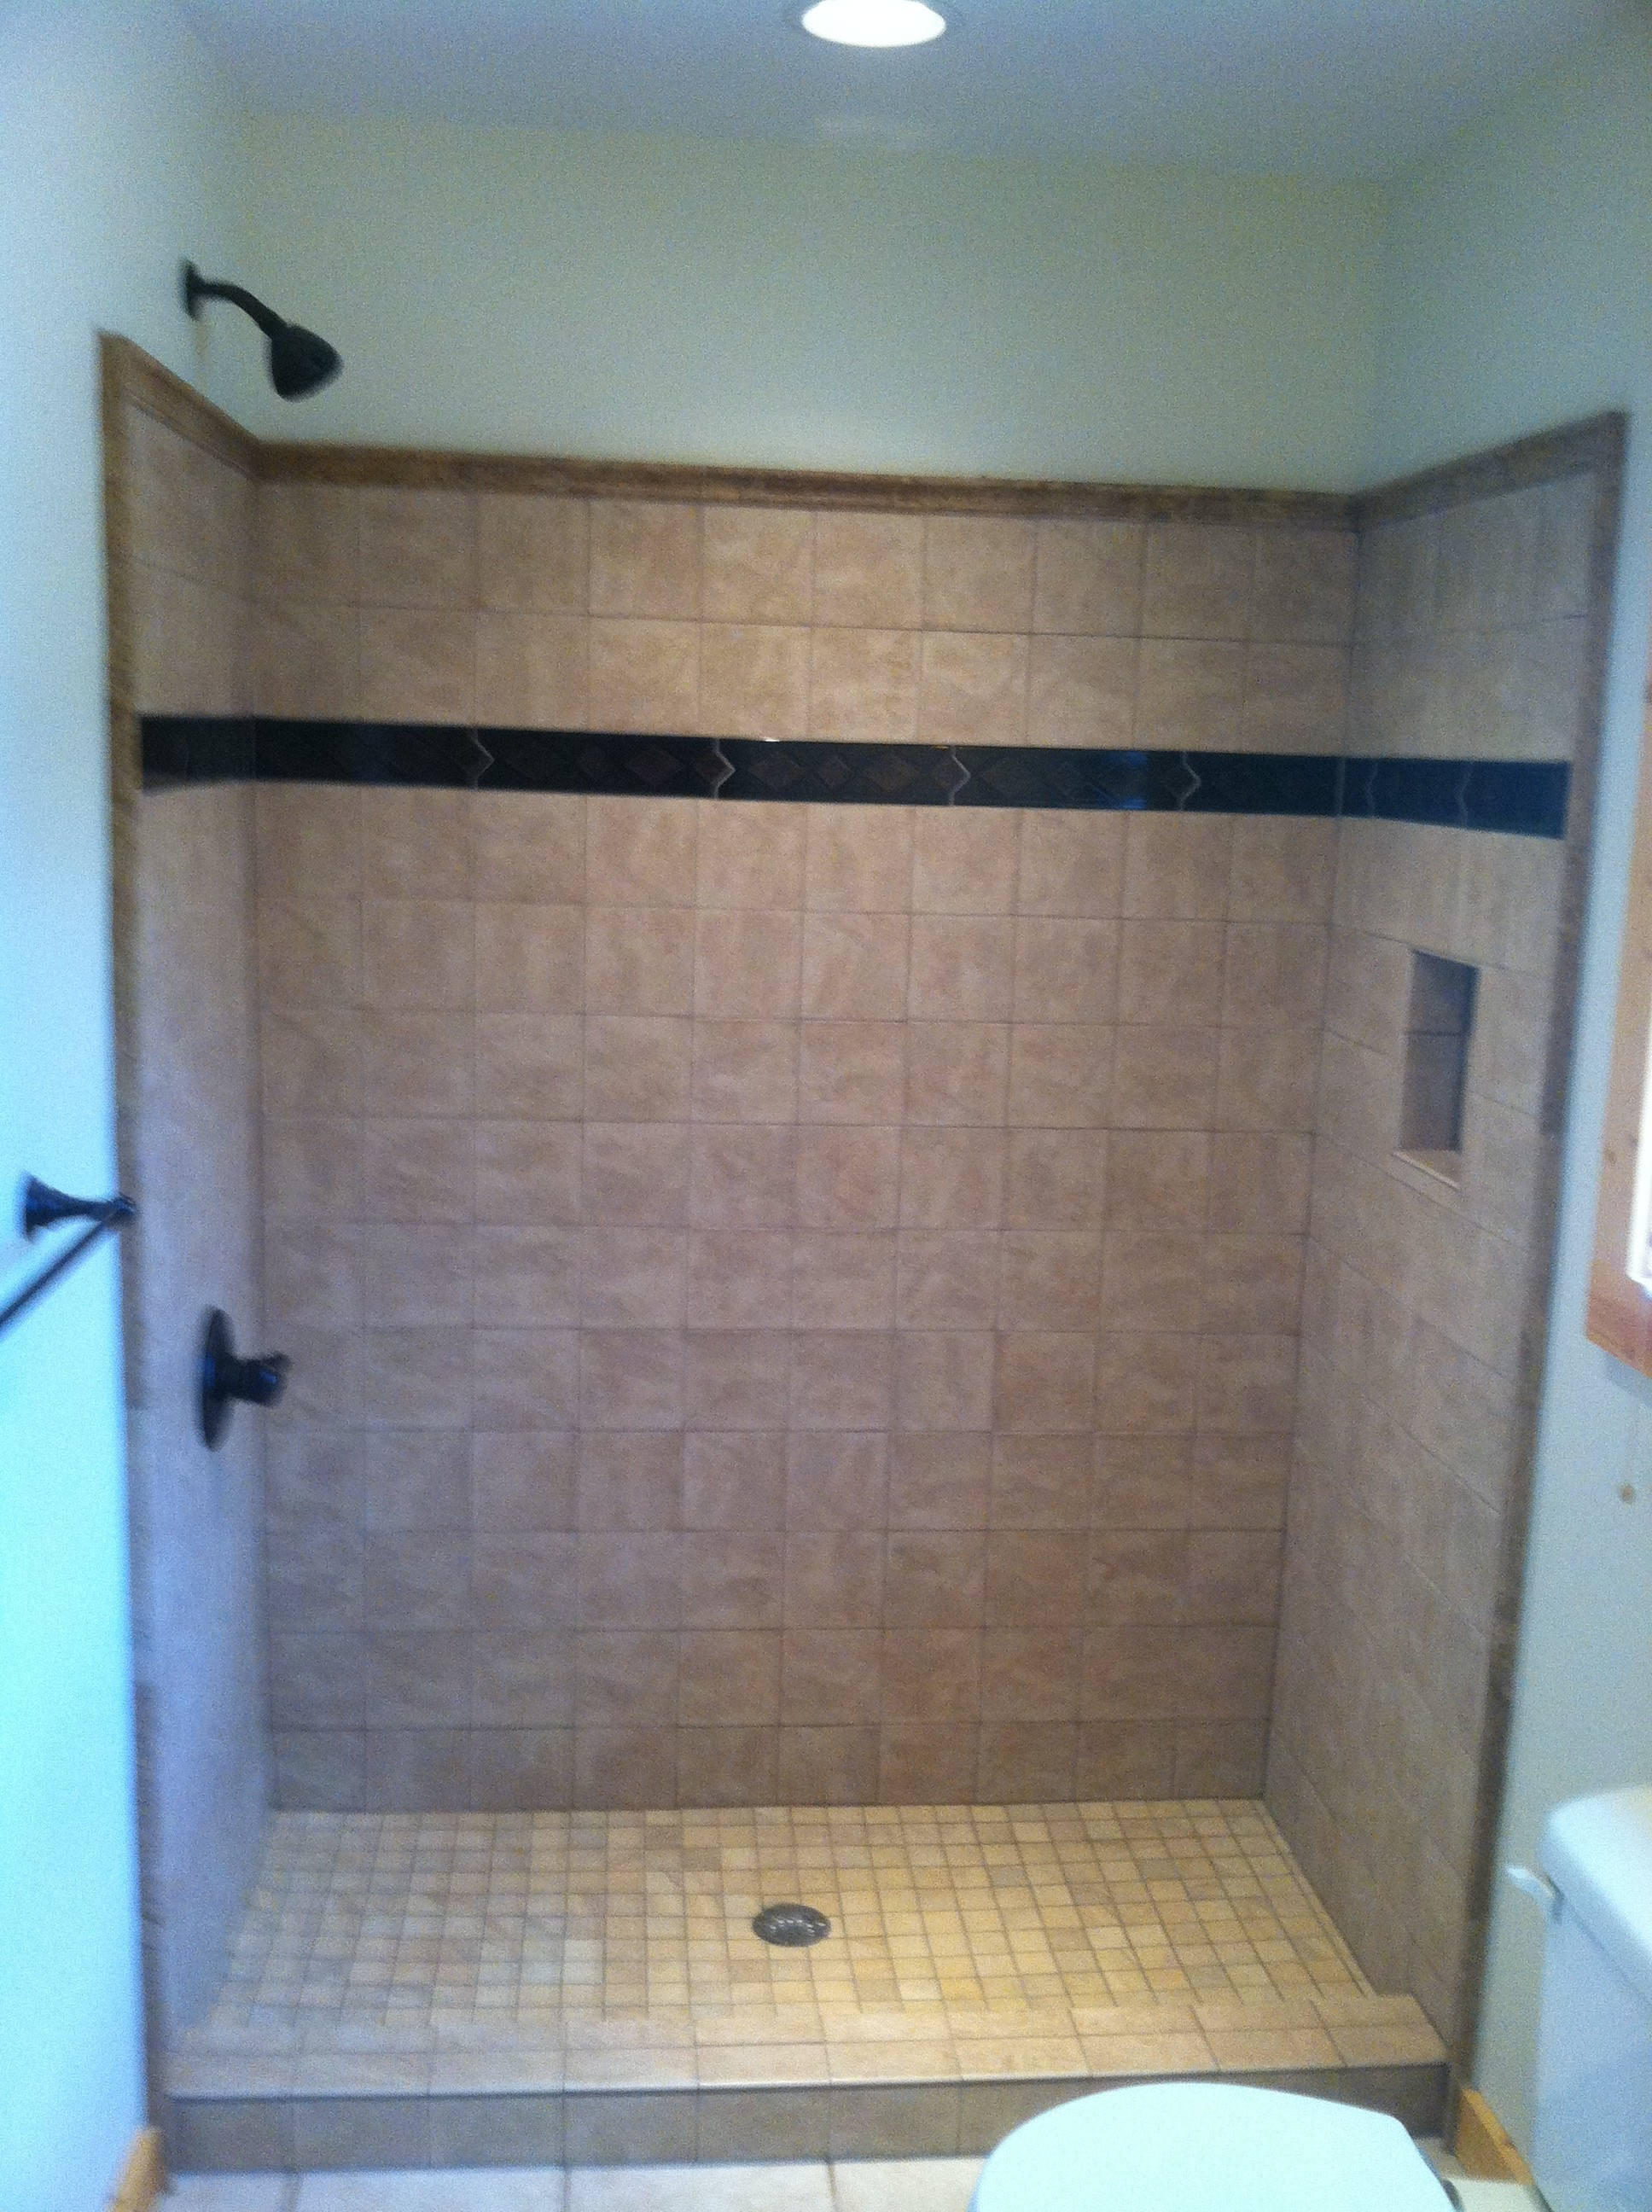 Tile Shower installation in Ellijay GA- Blueridge, Blairesville,and North GA areas